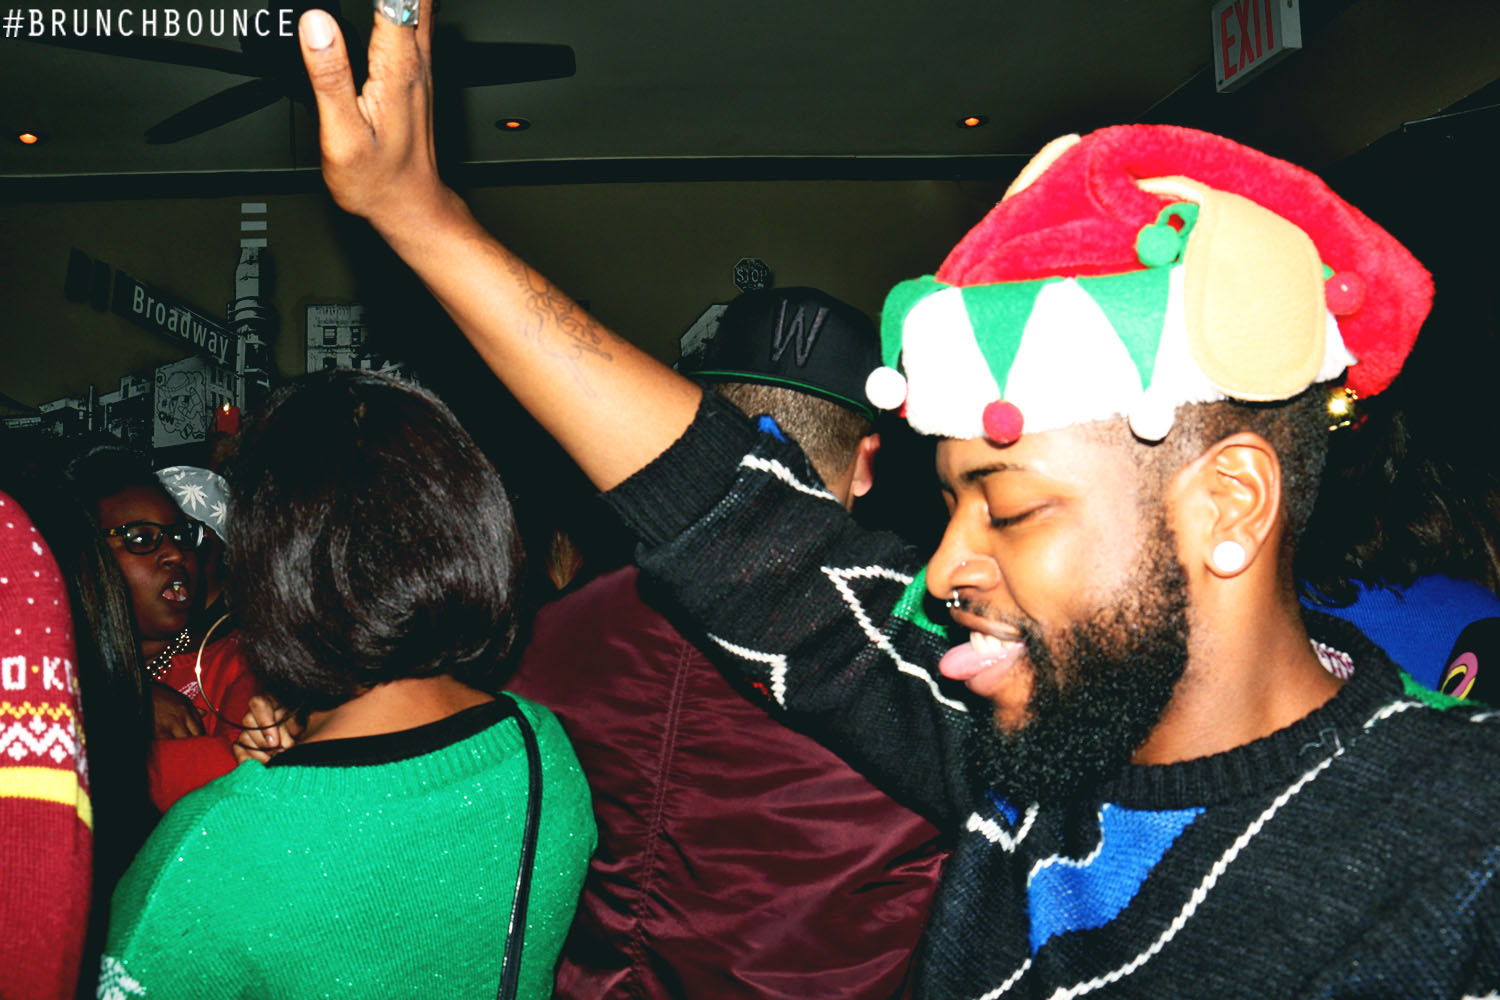 brunchbounce-ugly-christmas-sweater-party-122014_16082726655_o.jpg